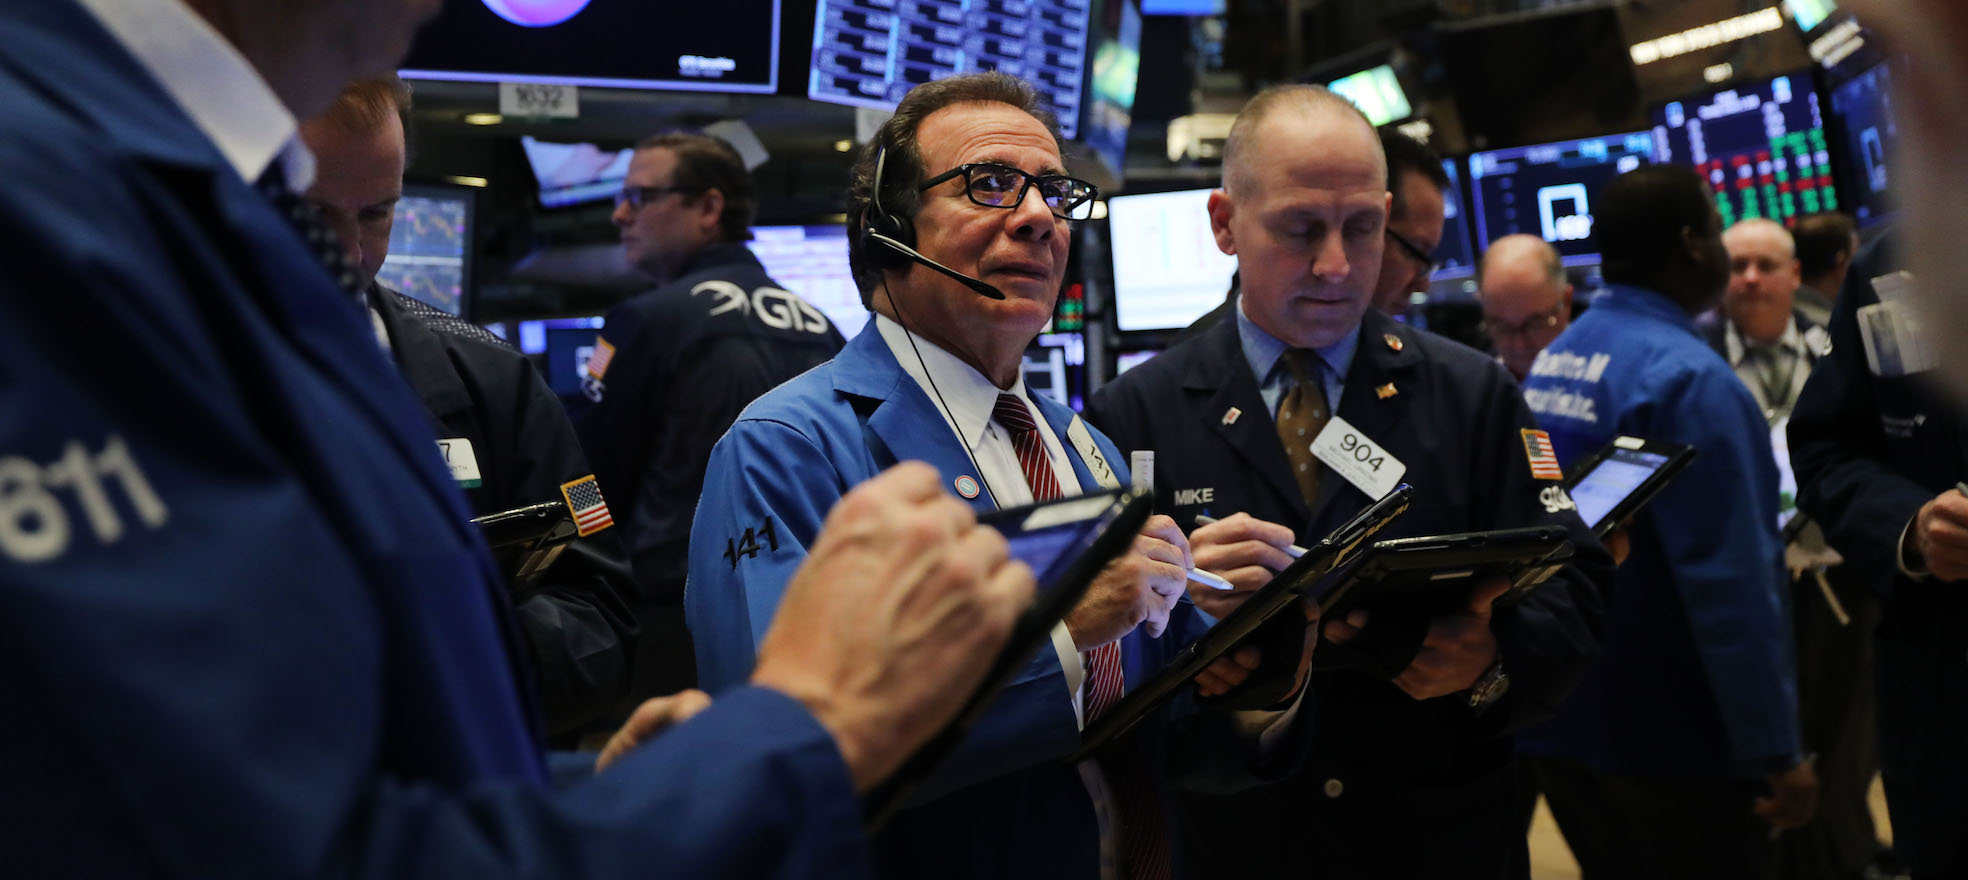 6 things to say to clients worried about stock market volatility